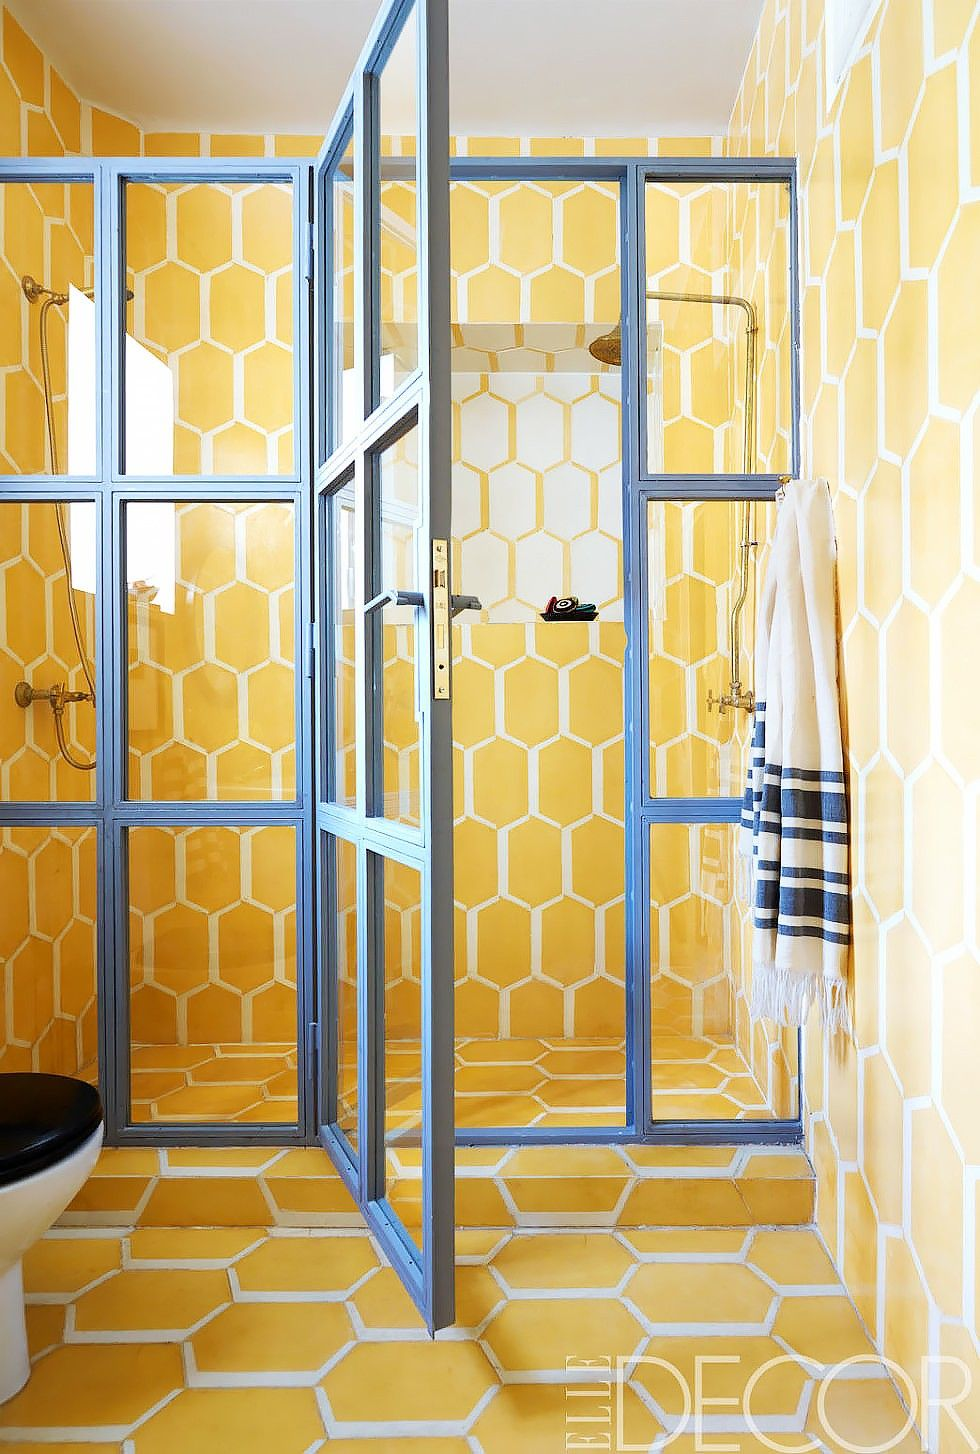 Yellow Tile Bathroom Decorating Ideas 15 tiny bathrooms with major chic factor | shower doors, tiny